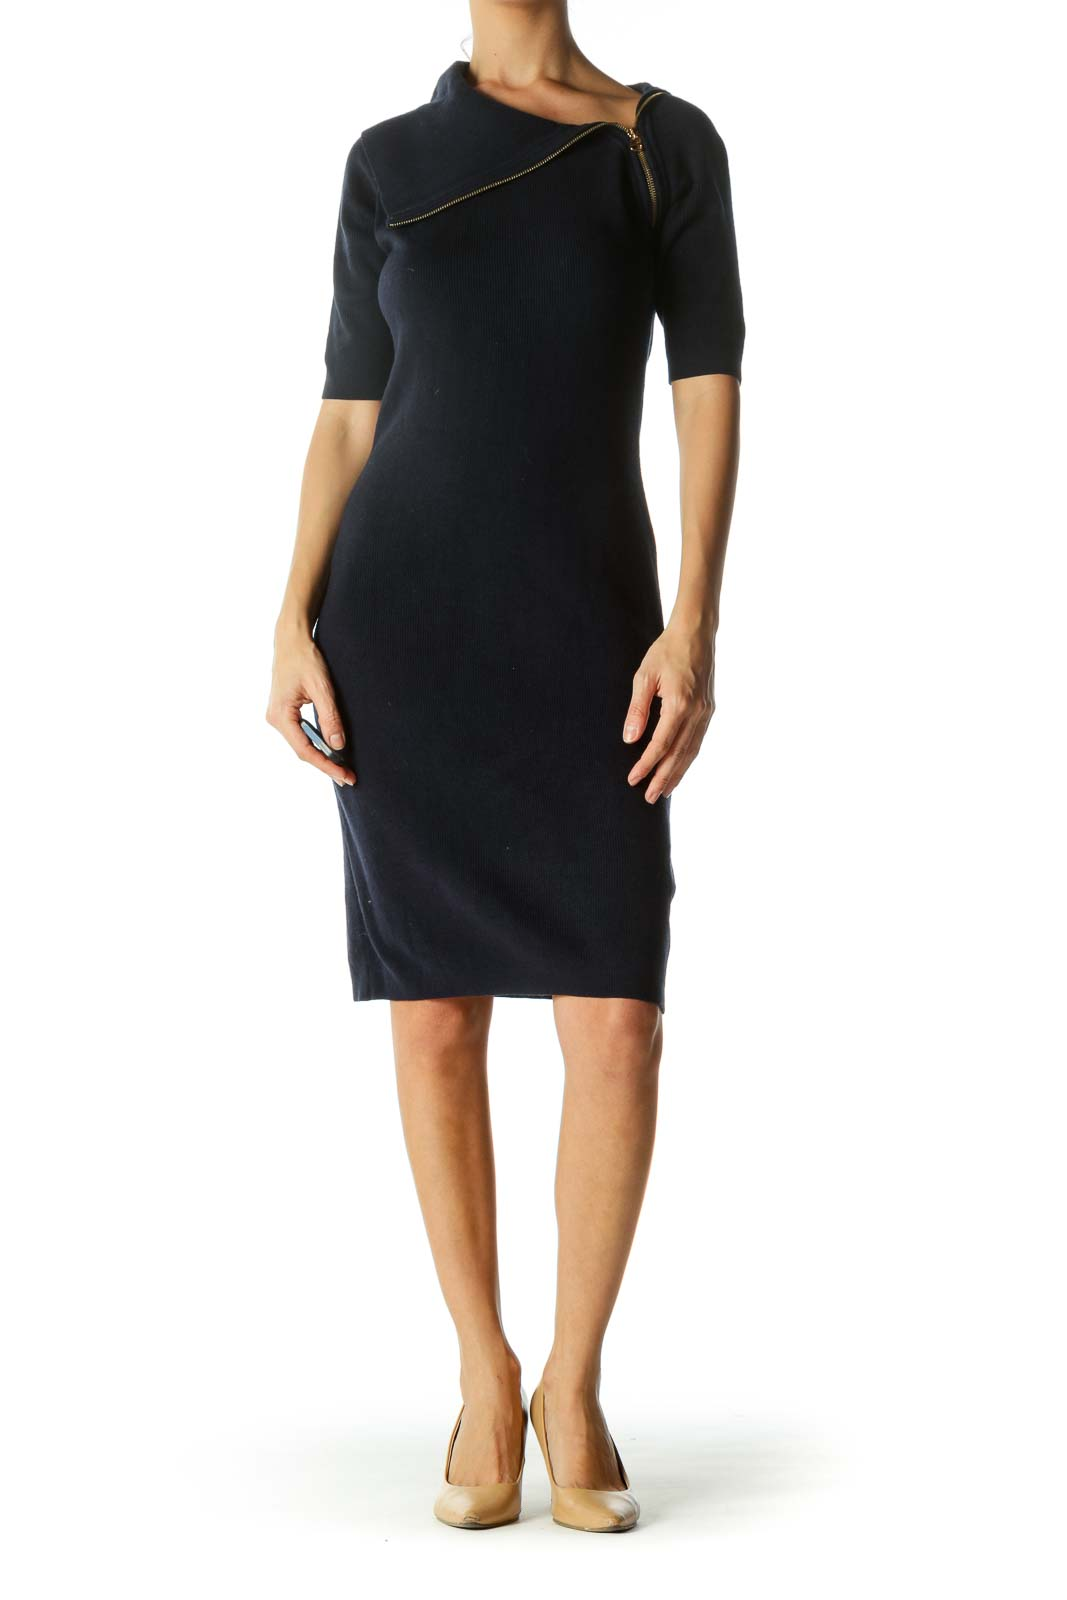 Navy Asymmetric Turtle Neck Bodycon Knit Dress